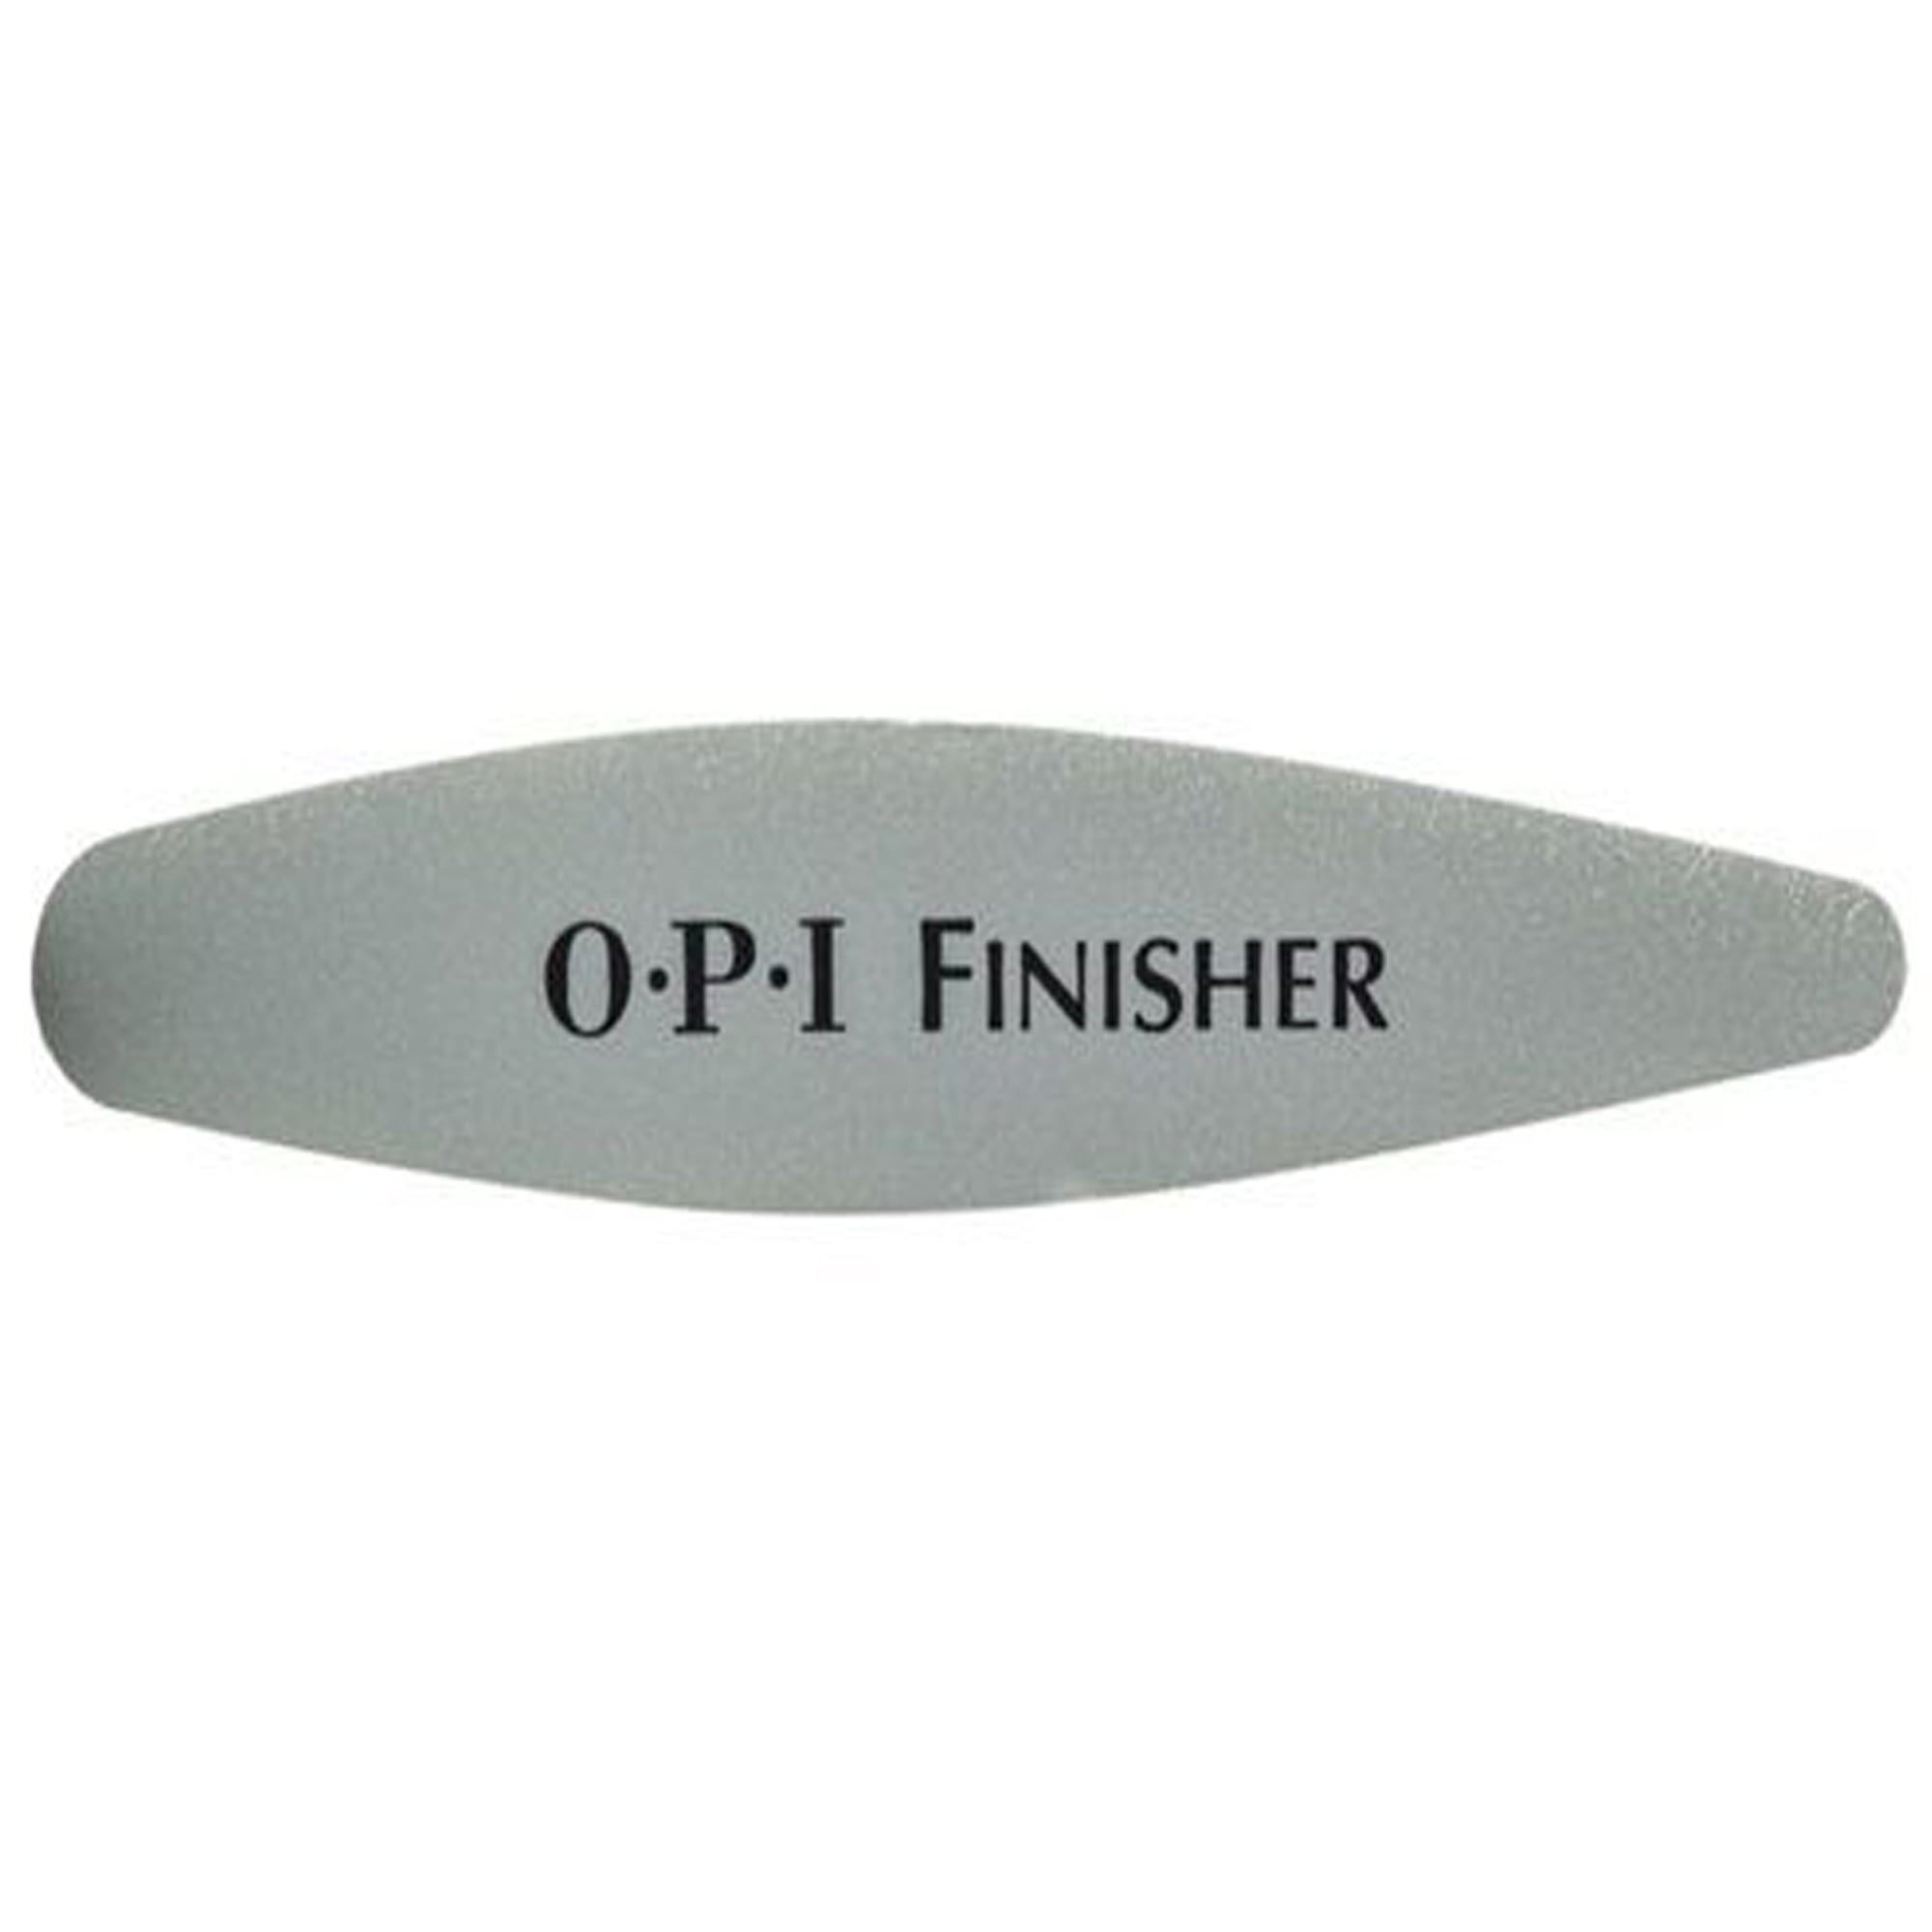 OPI Professional Nail Files - Finisher Phat File Grit